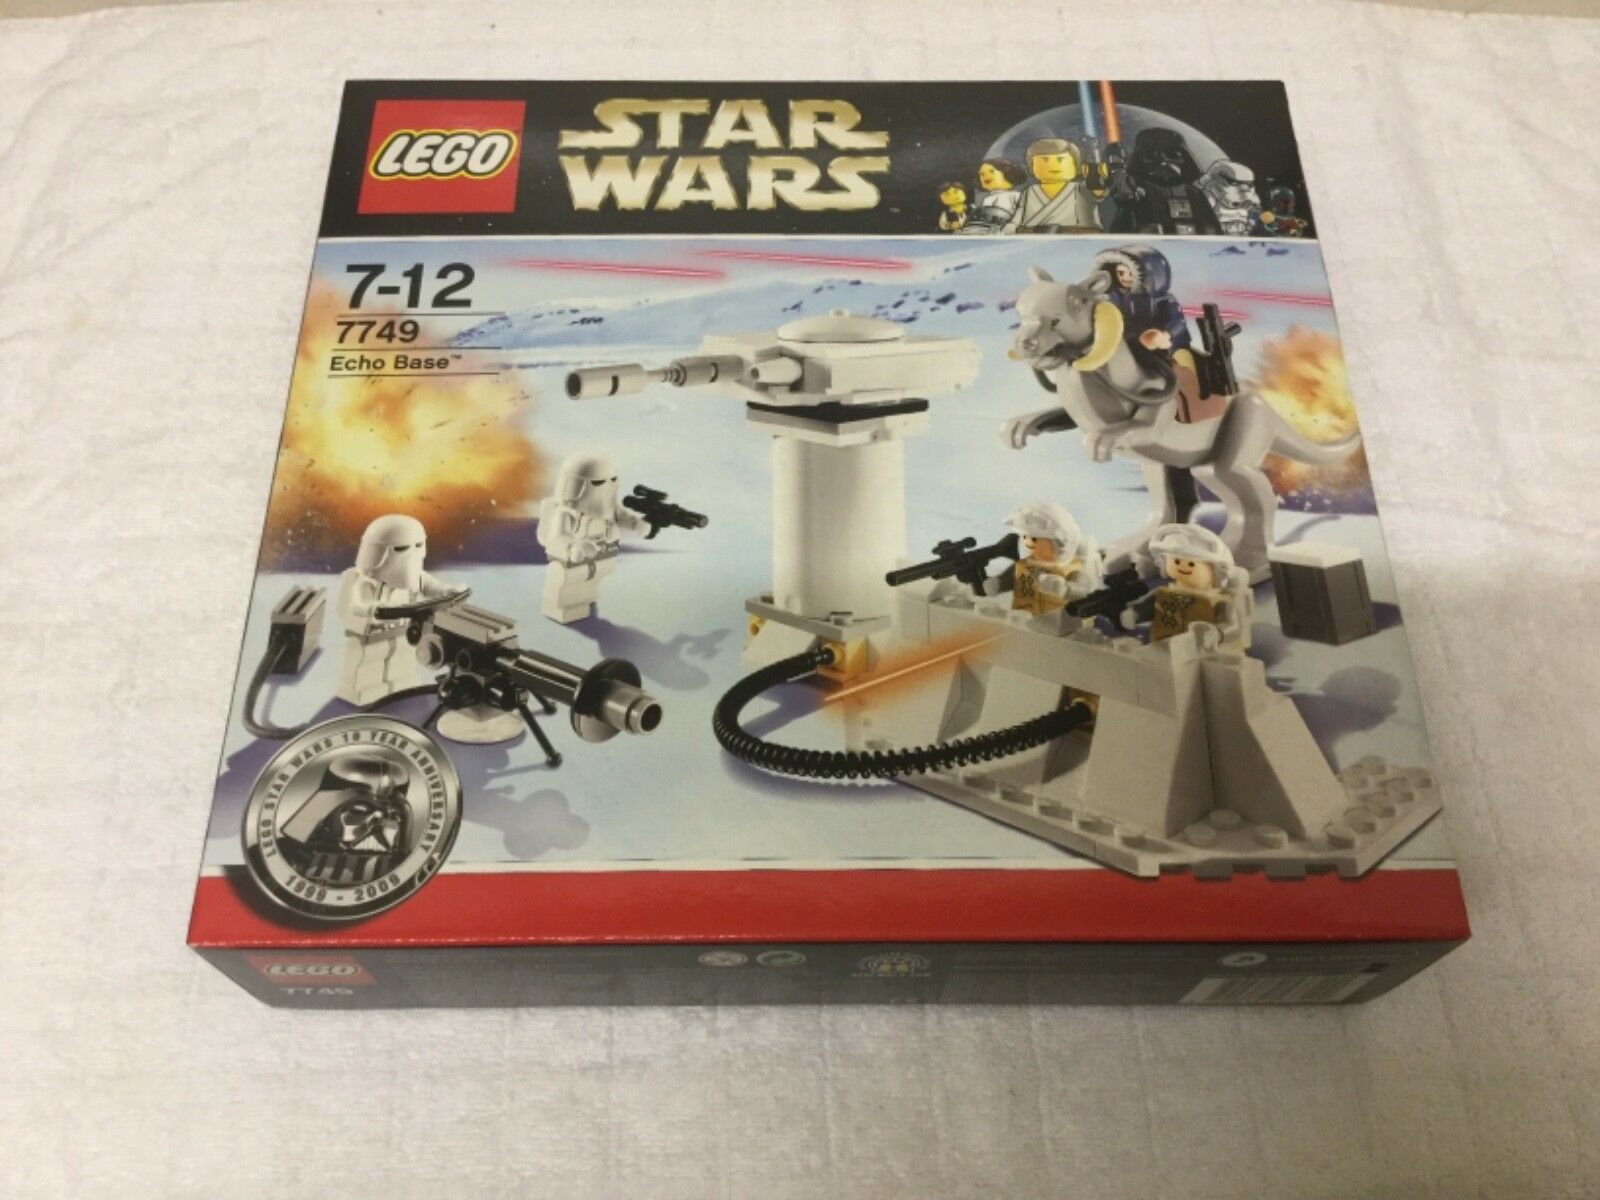 LEGO Star Wars 7749 Echo Base. Discontinued. Brand new. Rare